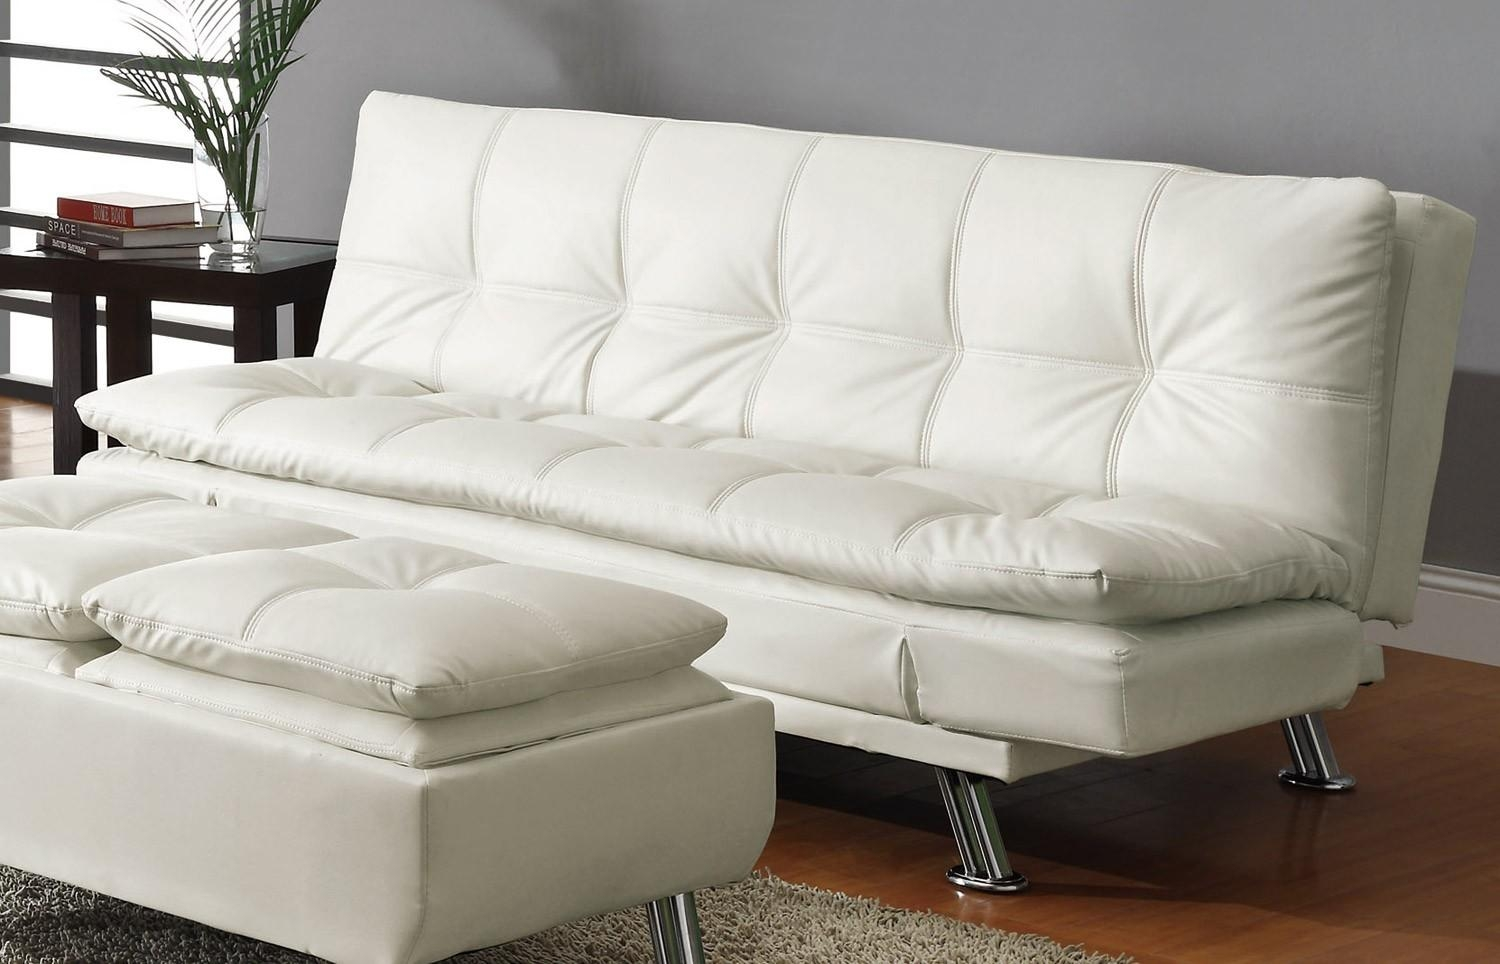 Sofas Center : Most Comfortable Sofas And Chairs Sofa Mattress The Intended For Comfortable Convertible Sofas (View 20 of 20)